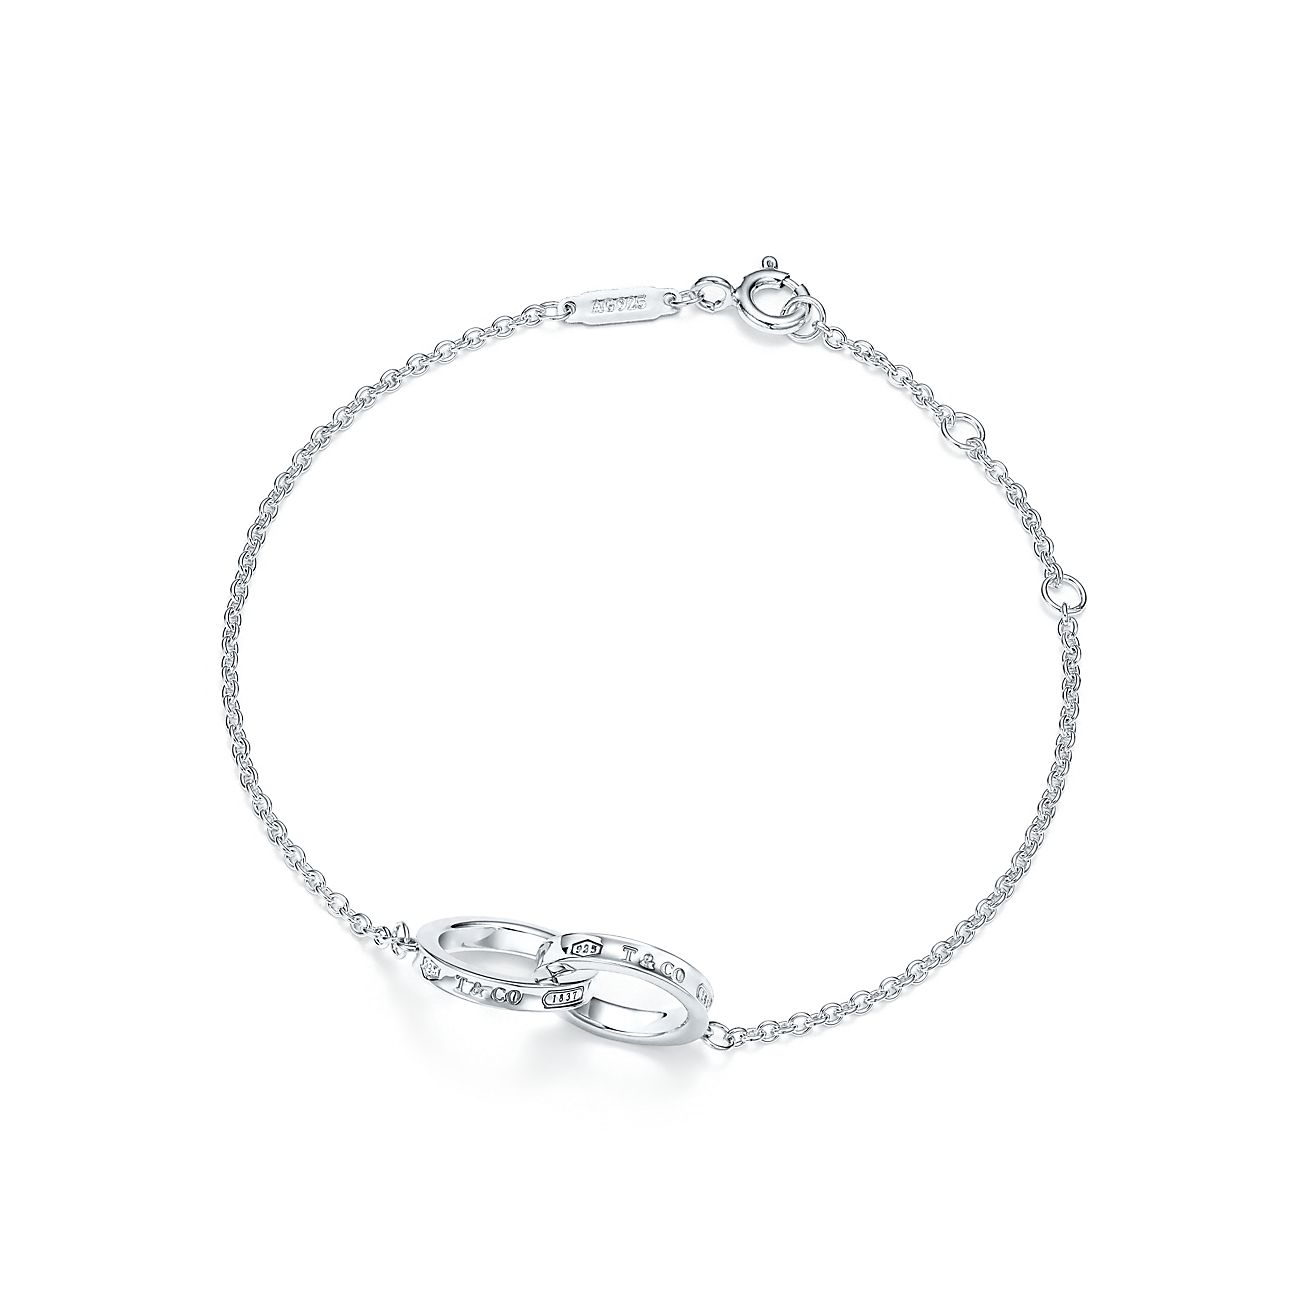 Tiffany 1837 Interlocking Bracelet